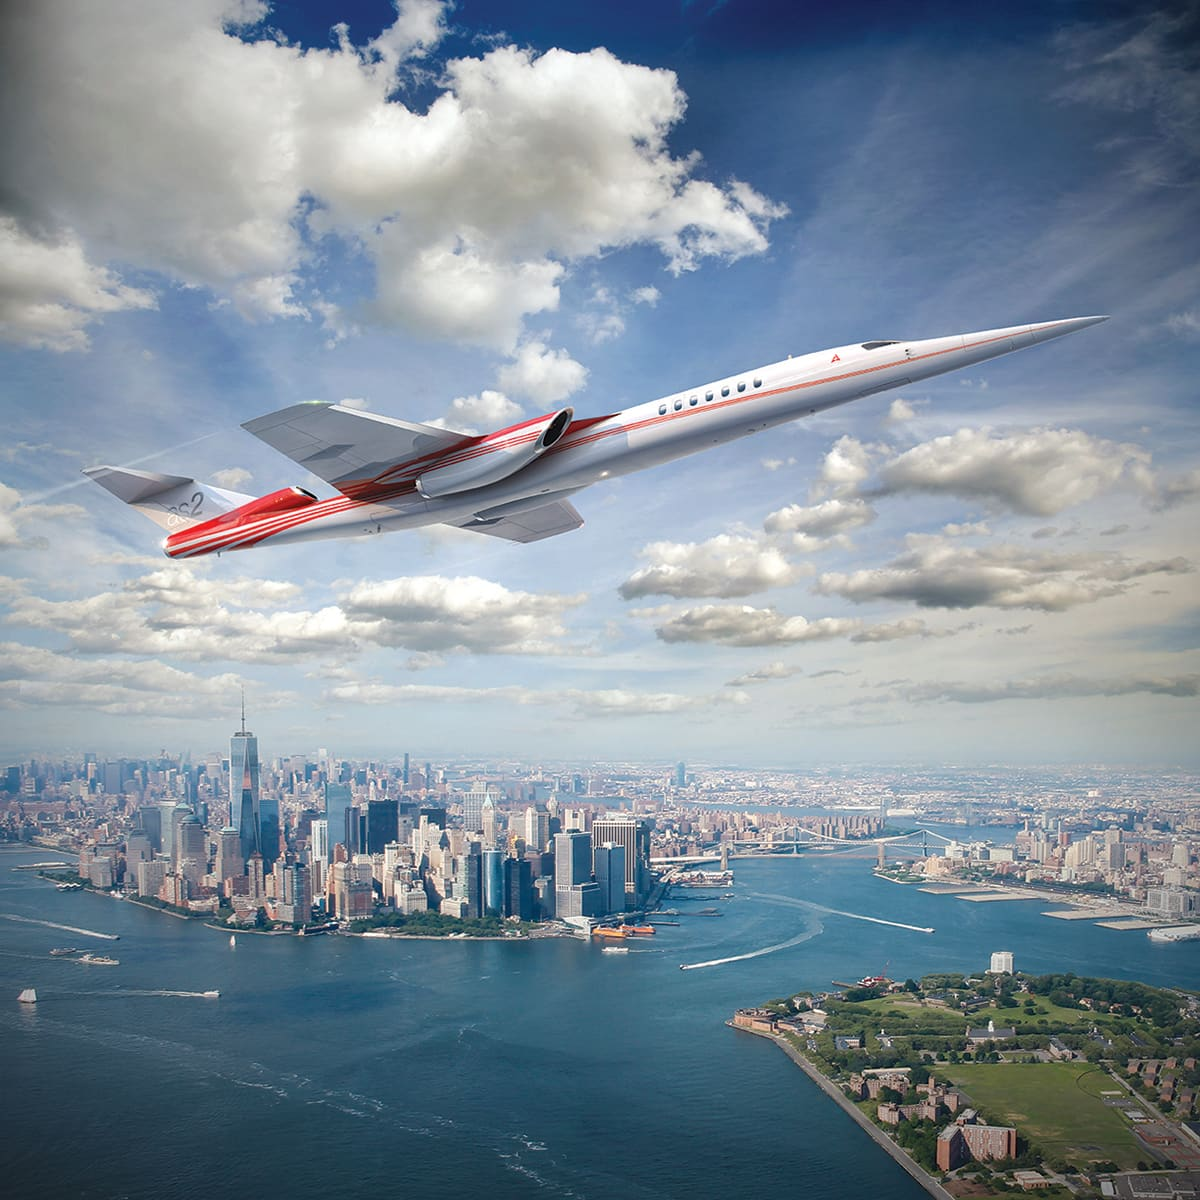 https://www.cnbc.com/2020/01/16/aerions-as2-silent-supersonic-jet-aims-to-fly-by-2024.html?__source=Facebook